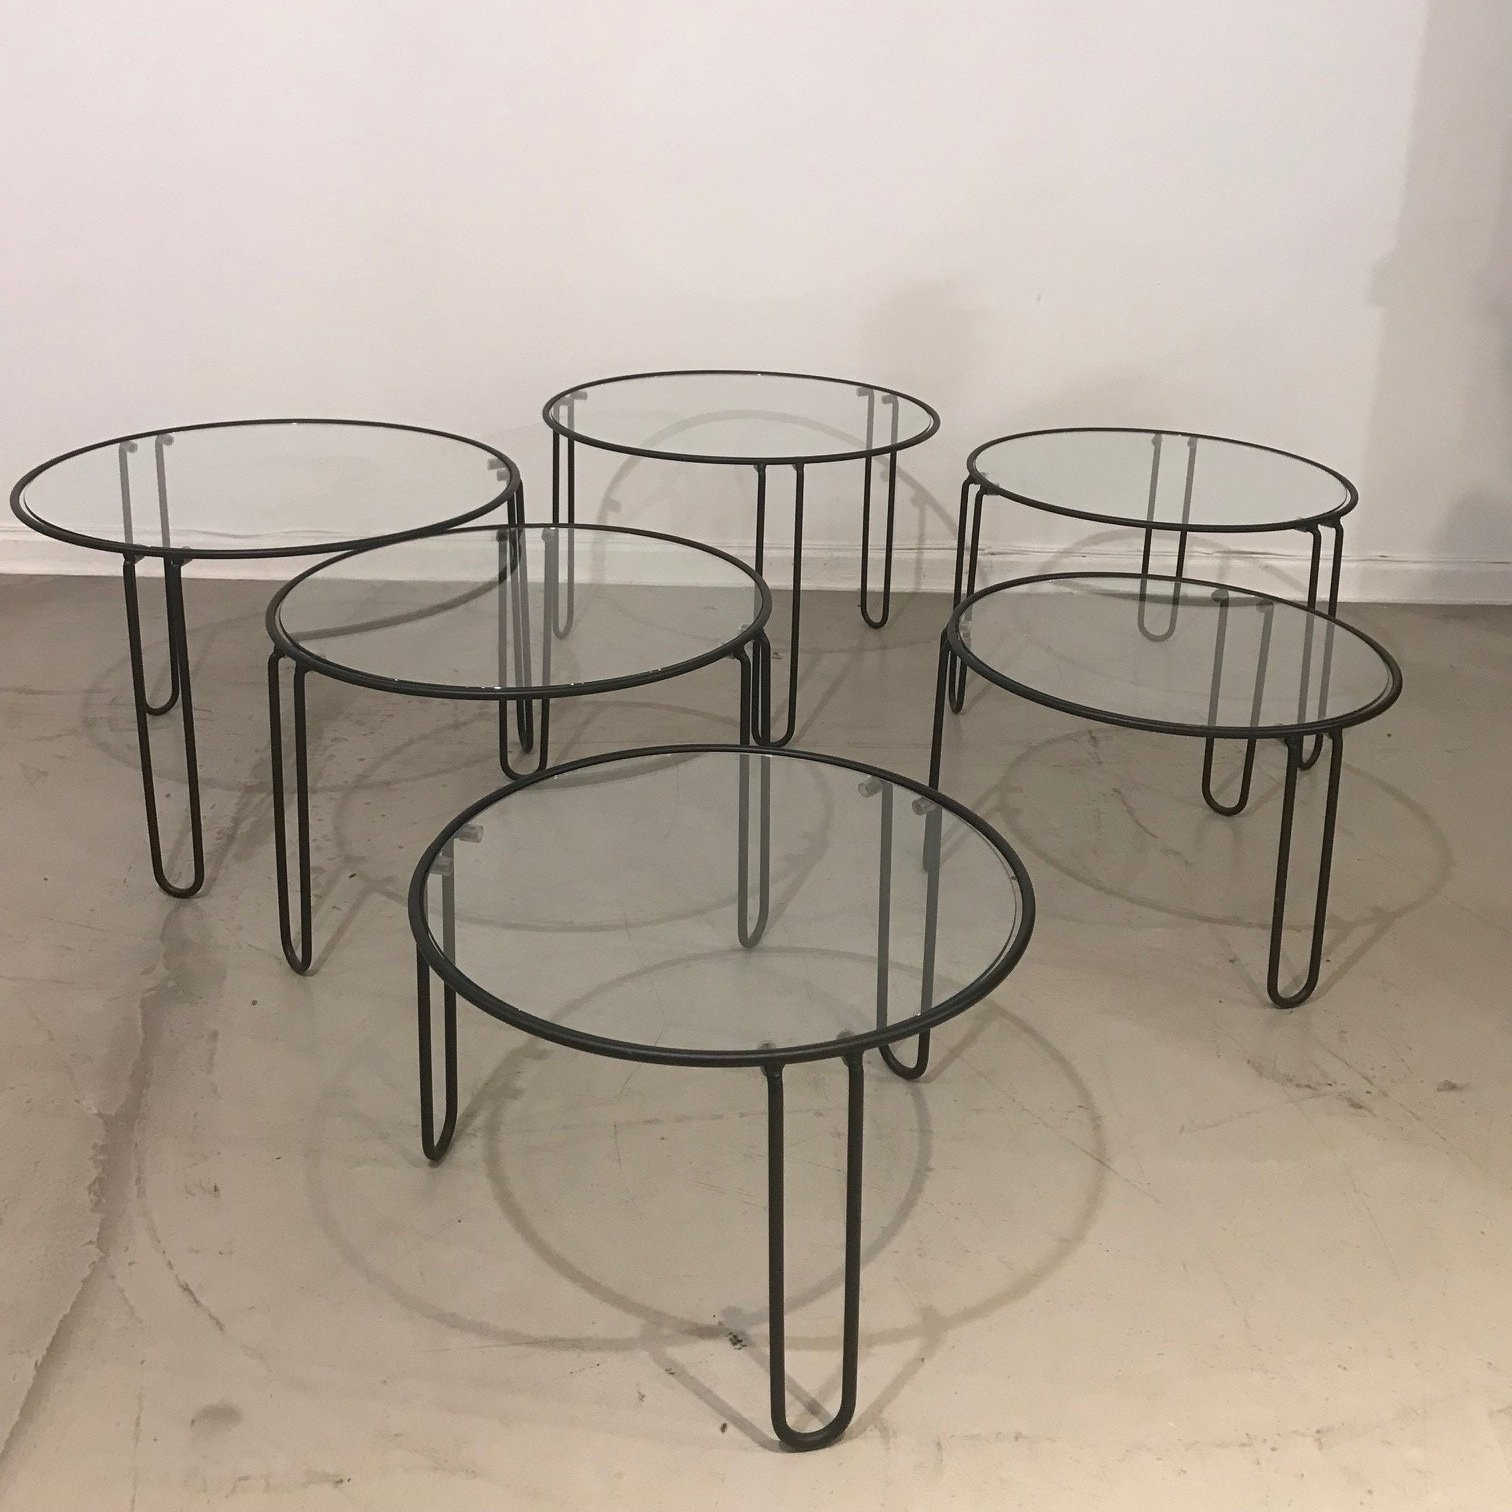 - Set Of 6 Round Glass Coffee Tables (3 Sizes) With Black Metal